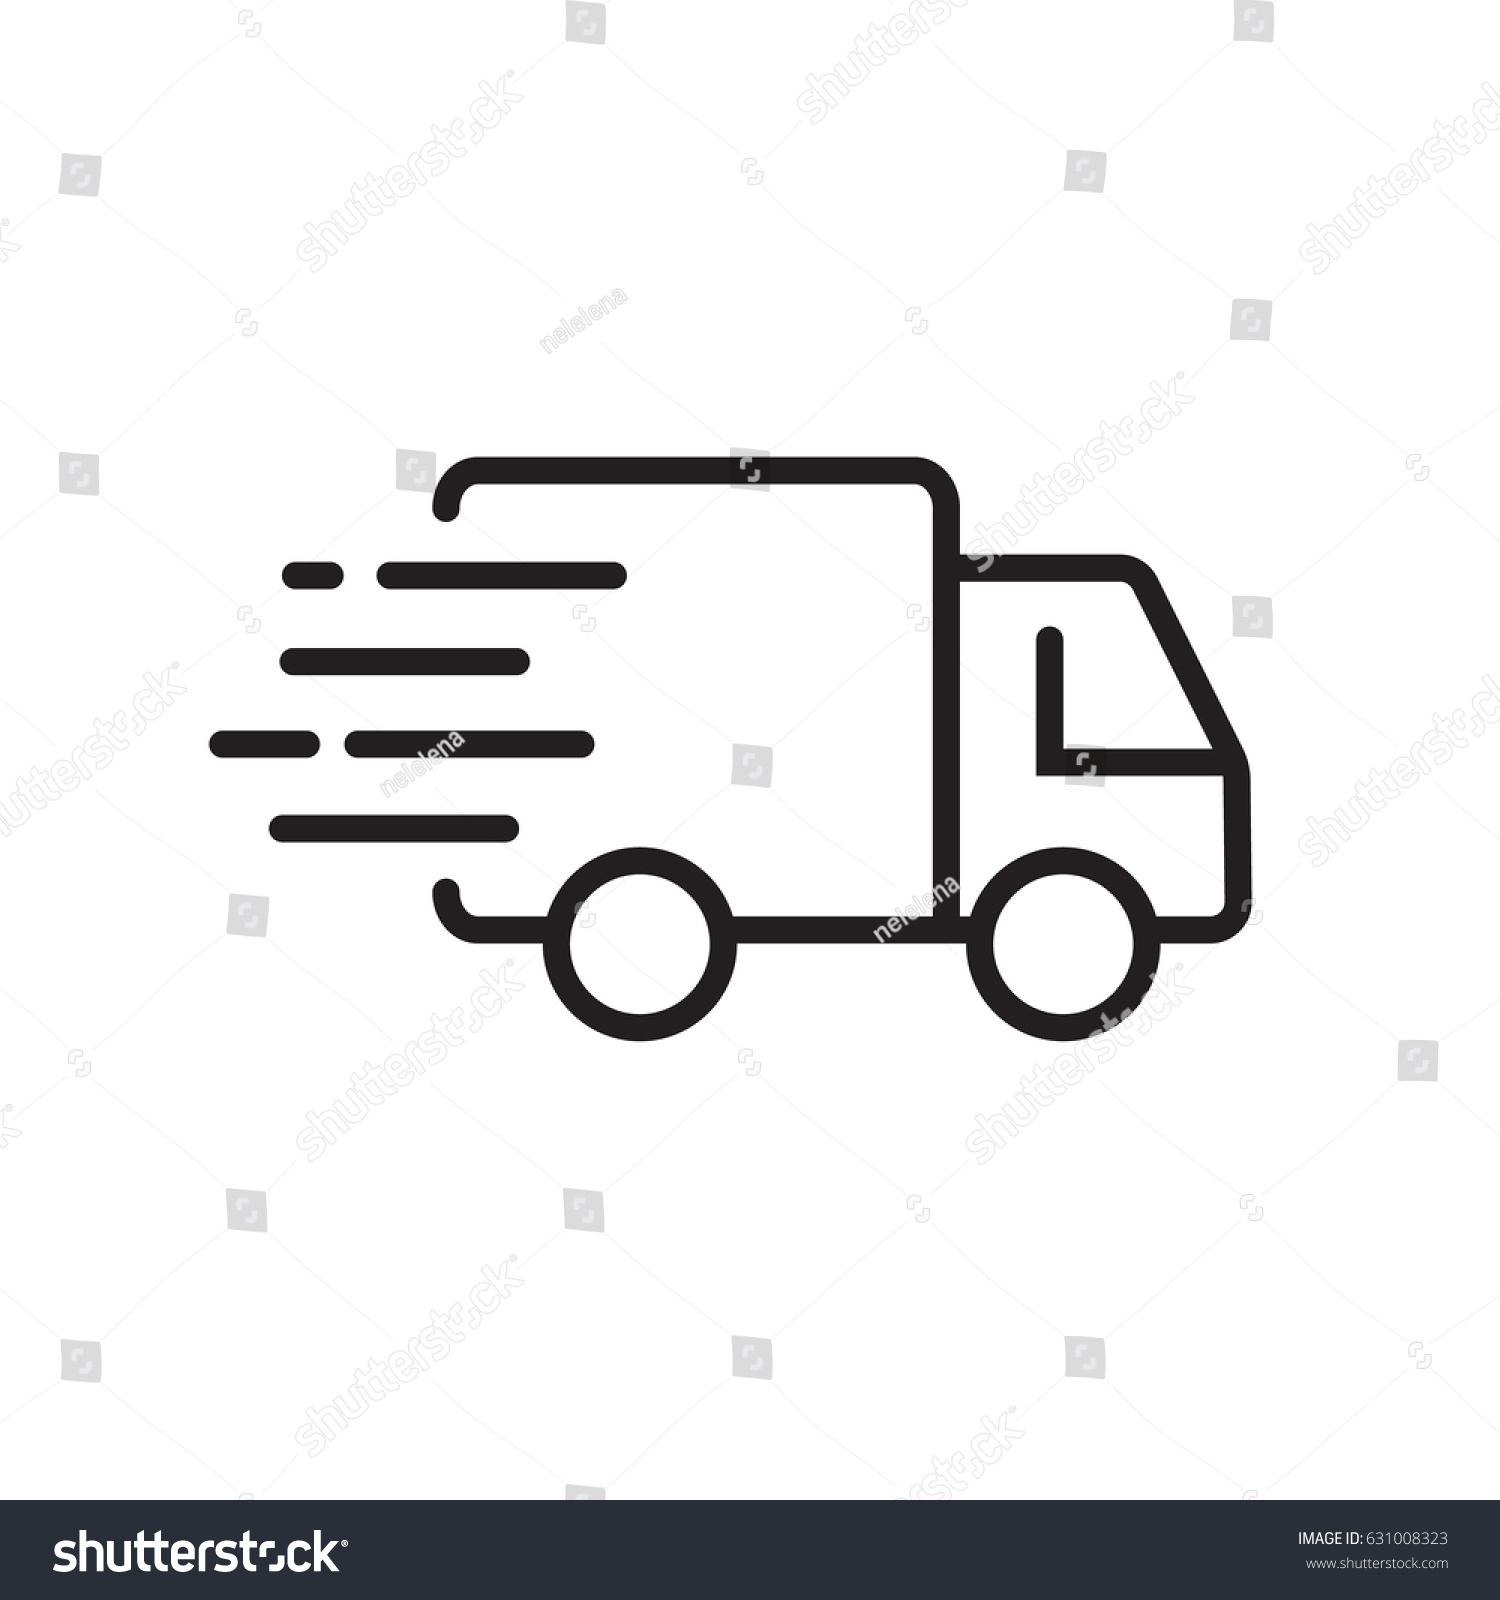 Fast shipping delivery truck line icon stock vector for Truck design app